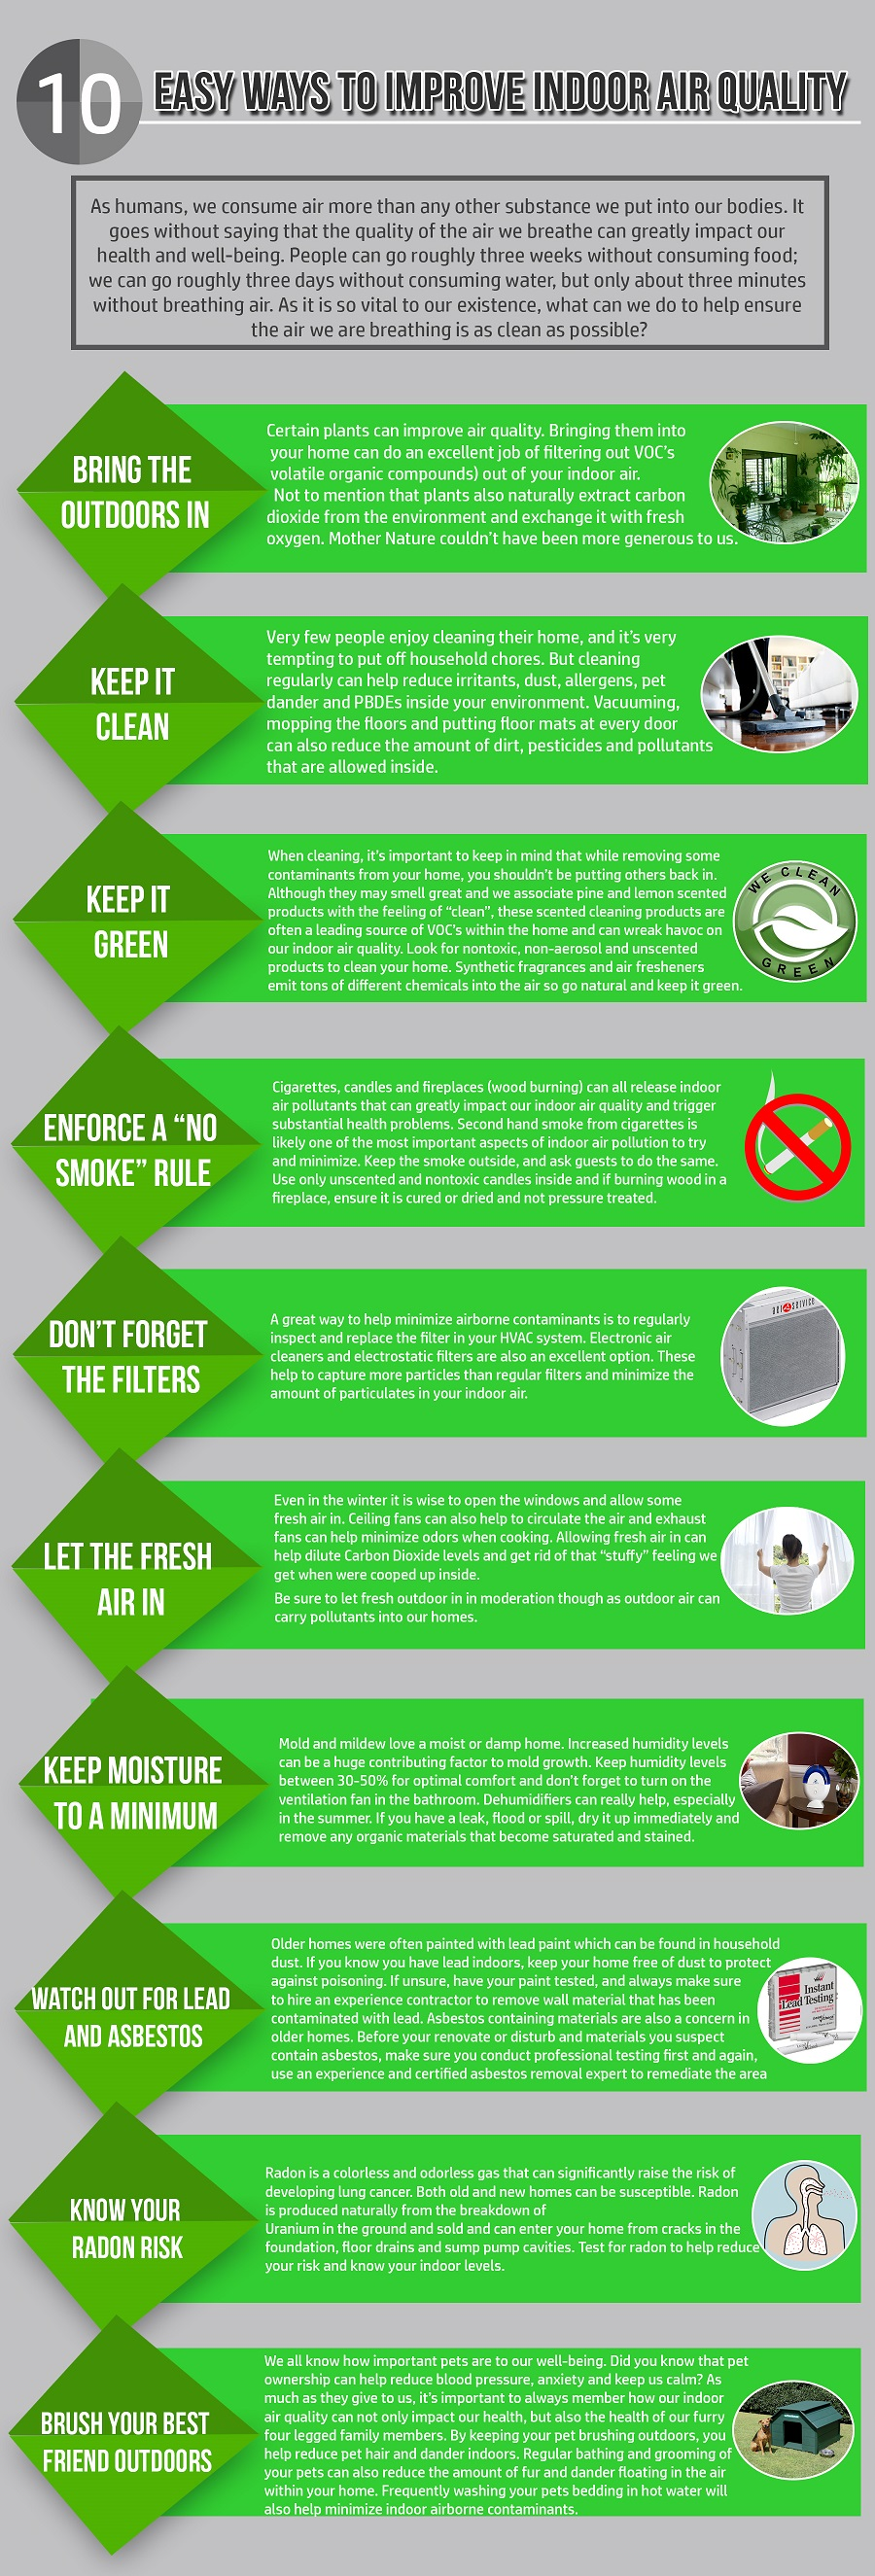 10 easy ways to improve indoor air quality infographic